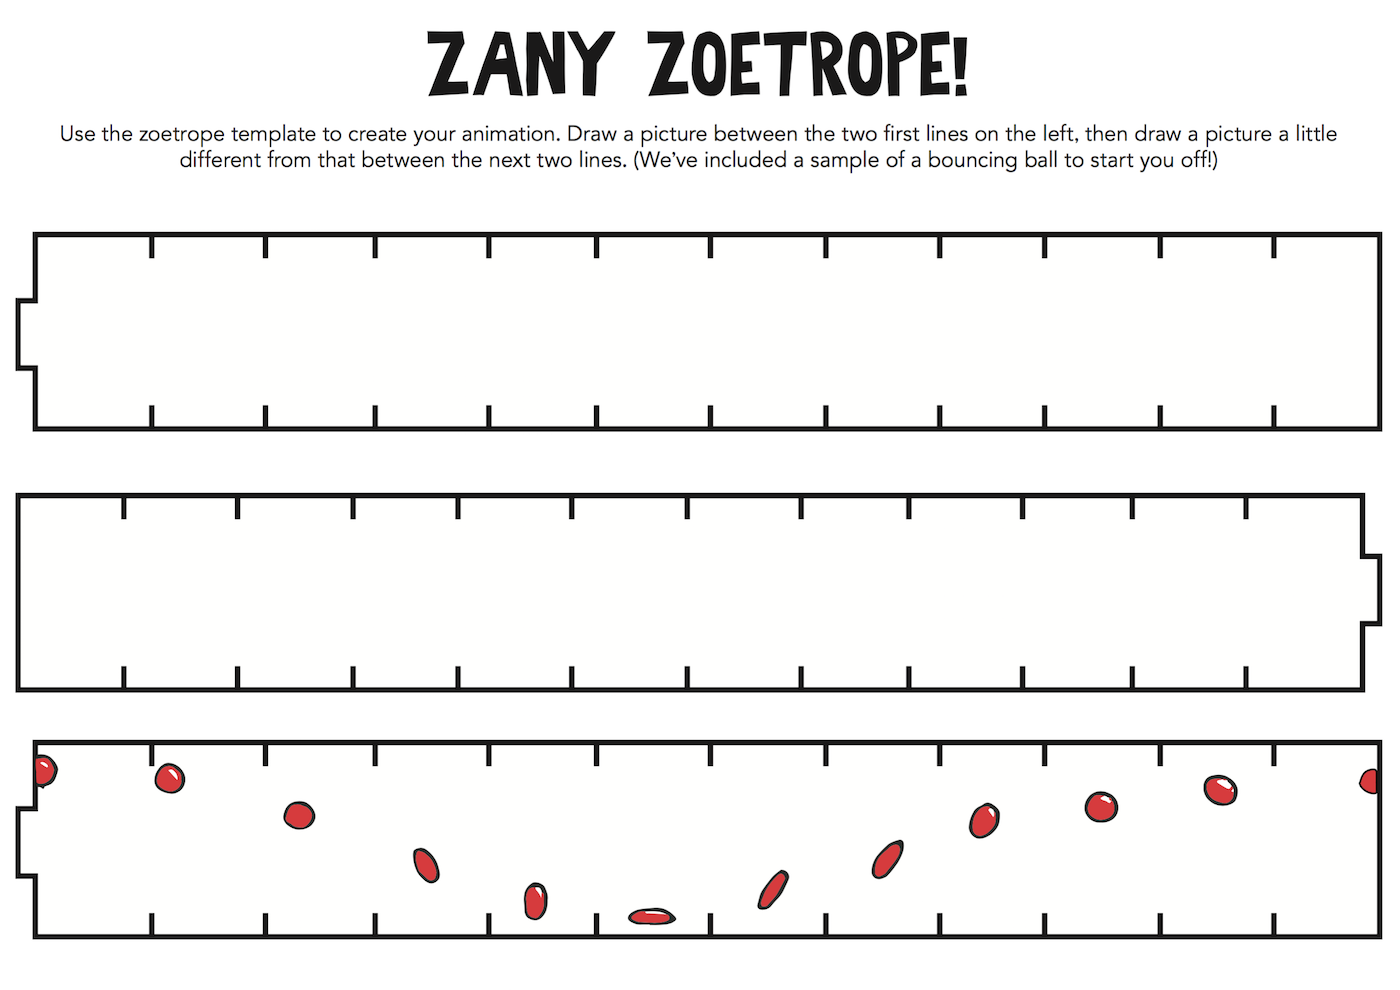 Printable Zany Zoetrope template